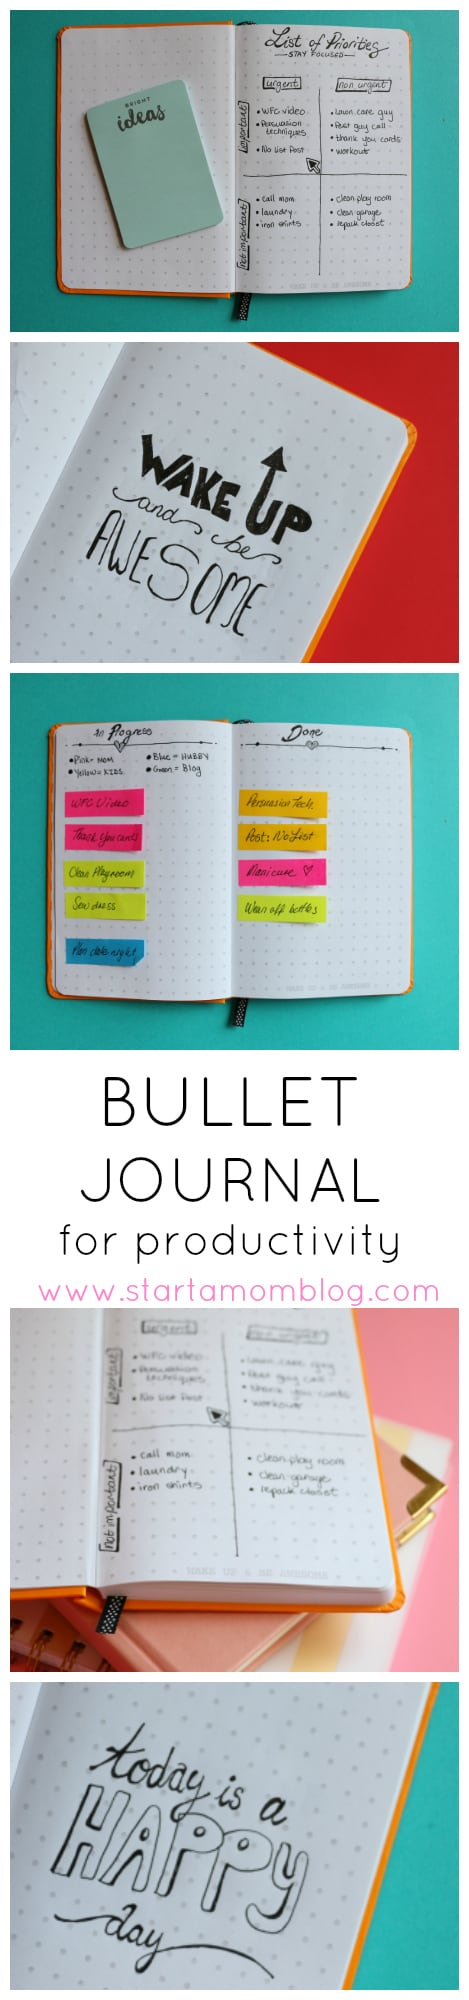 /bullet-journal-use-productivity/